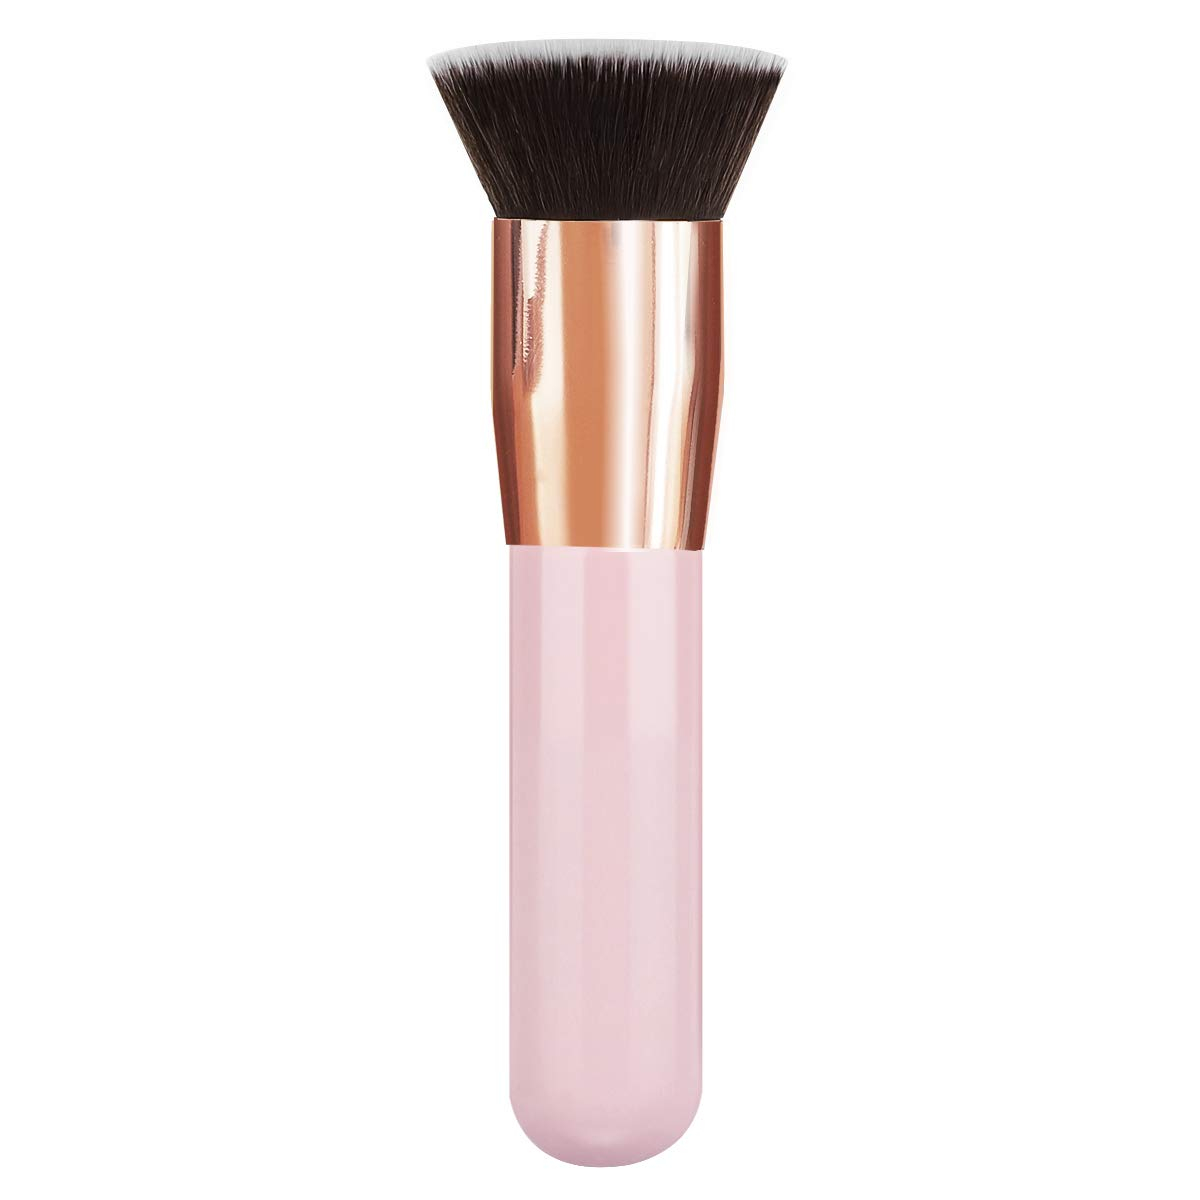 MoKo Foundation Makeup Brush, Premium Flat Head Top Kabuki Brush Portable Soft Synthetic Fiber Makeup Brush for Liquid Cream Mineral Powder Bronzer Face Cosmetic Make Up Tool, Pink